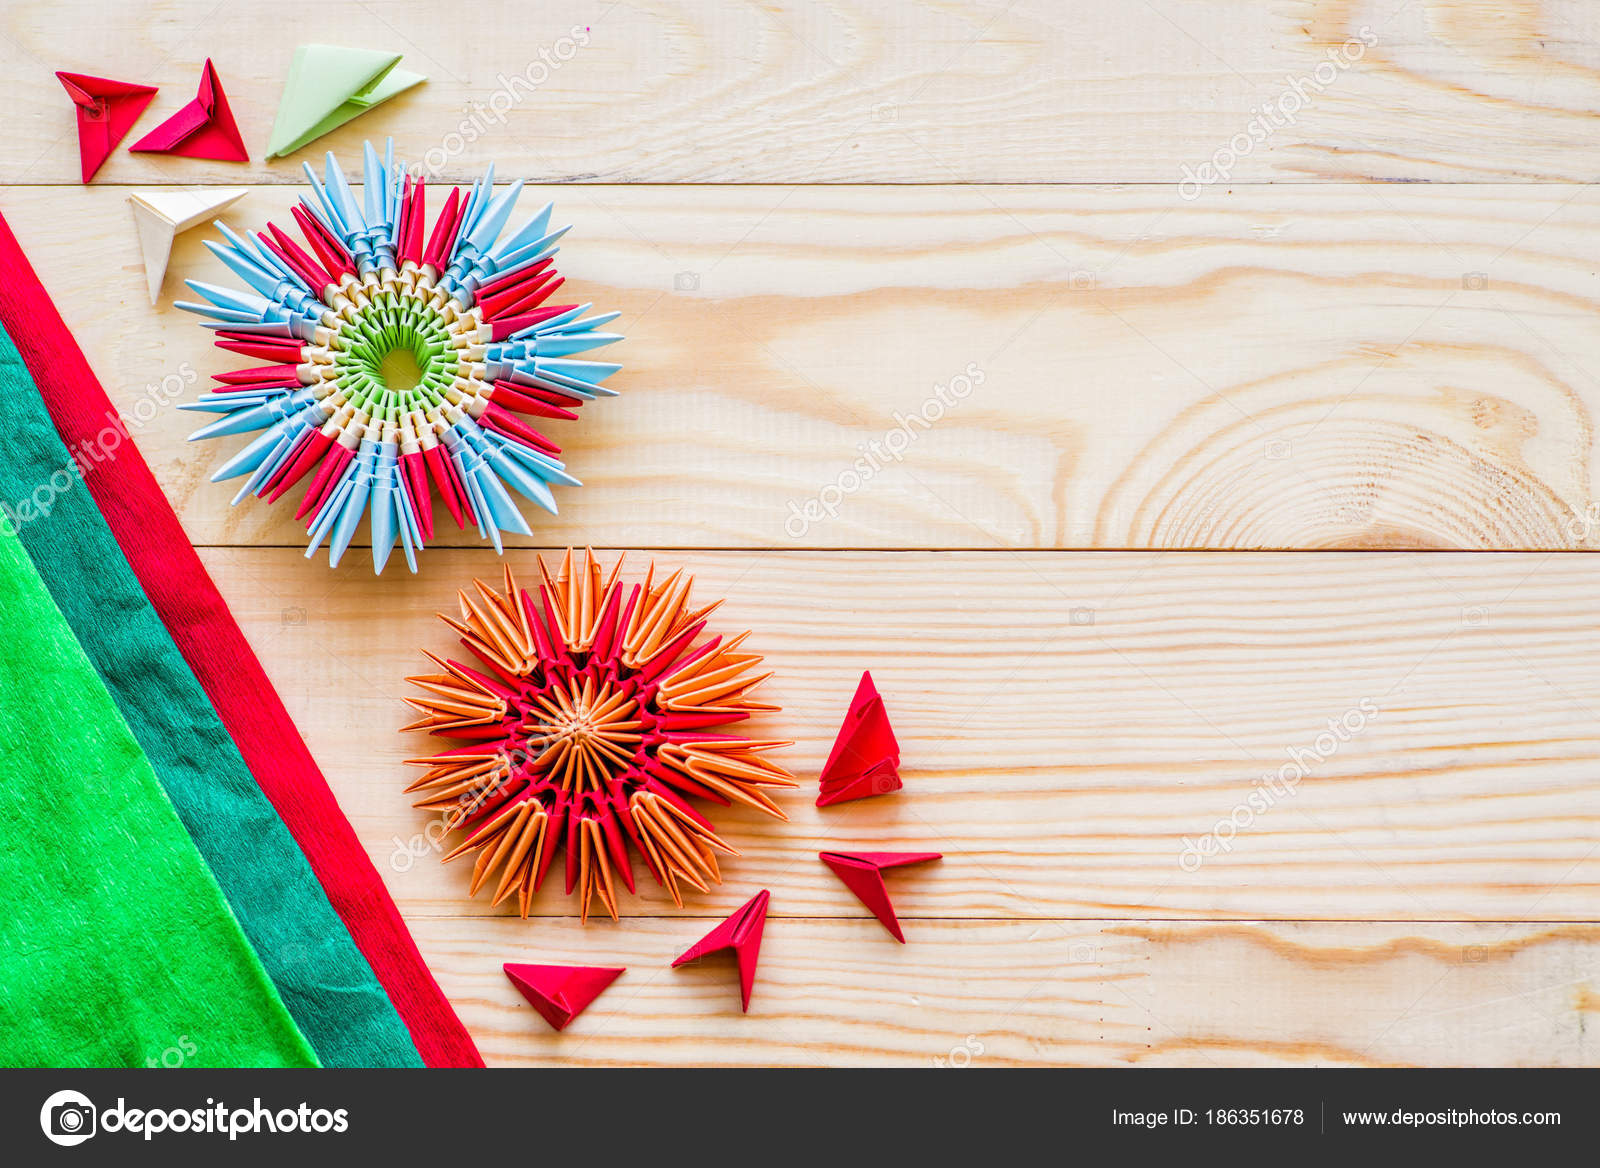 Modular Origami Flowers On Rustic Wooden Background With Paper And